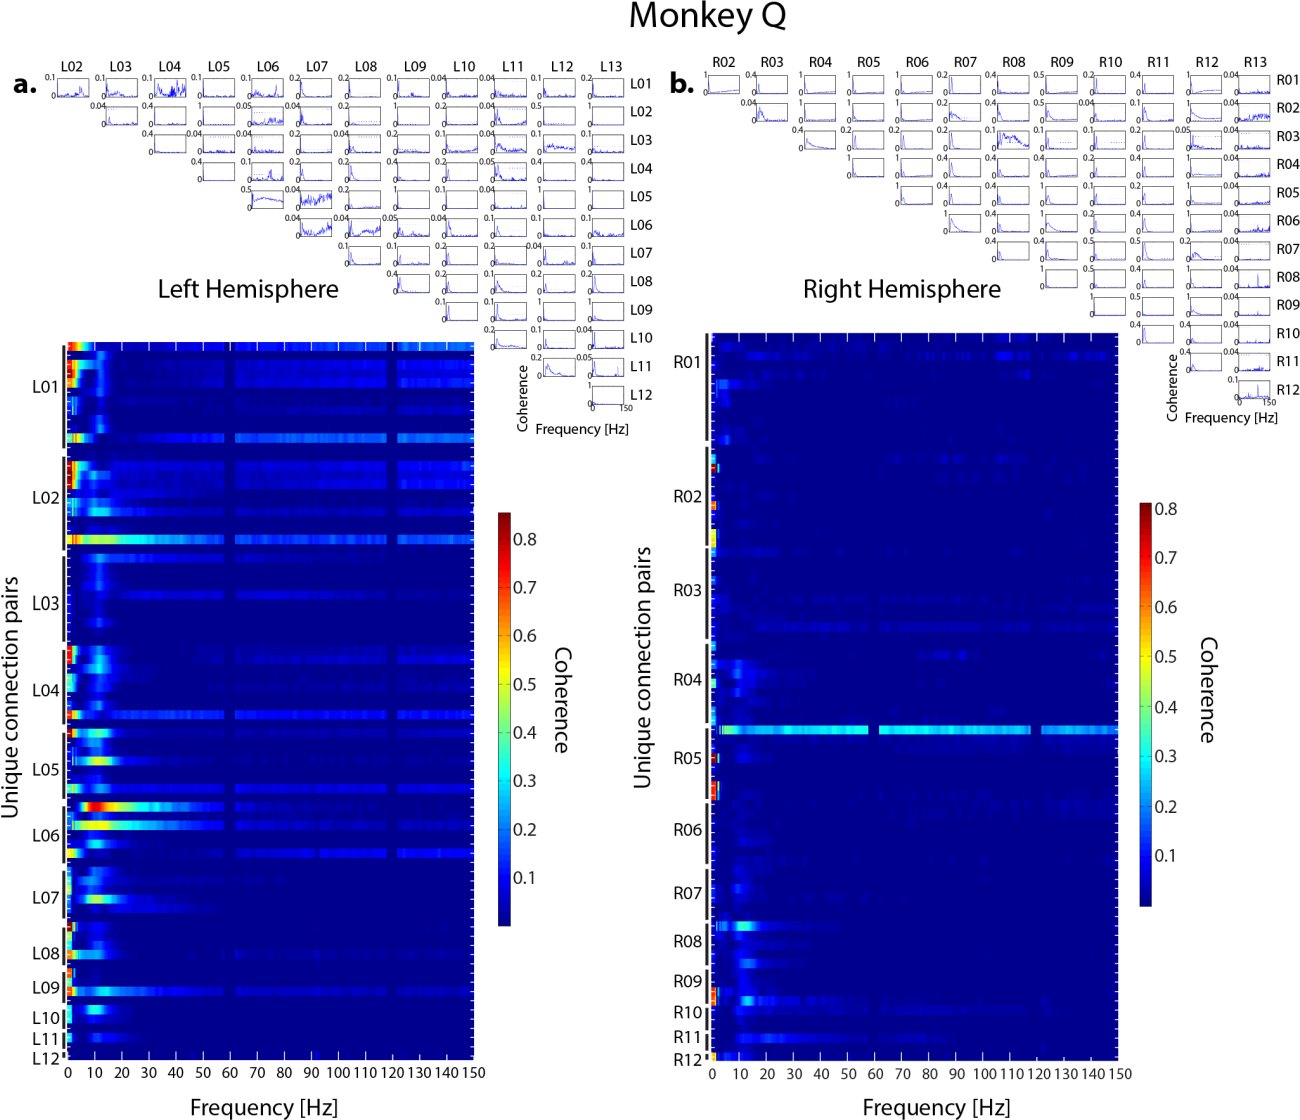 Figure 2.17 Full spectrum coherence for sites in monkey Q. Top: Left hemisphere coherence versus frequency for each unique ipsilateral connection pair. Dotted horizontal line shows significant coherence cutoff. Bottom: Each row shows left hemisphere coherence for each unique ipsilateral connection pair across frequencies. b) Same as a for right hemisphere connections.